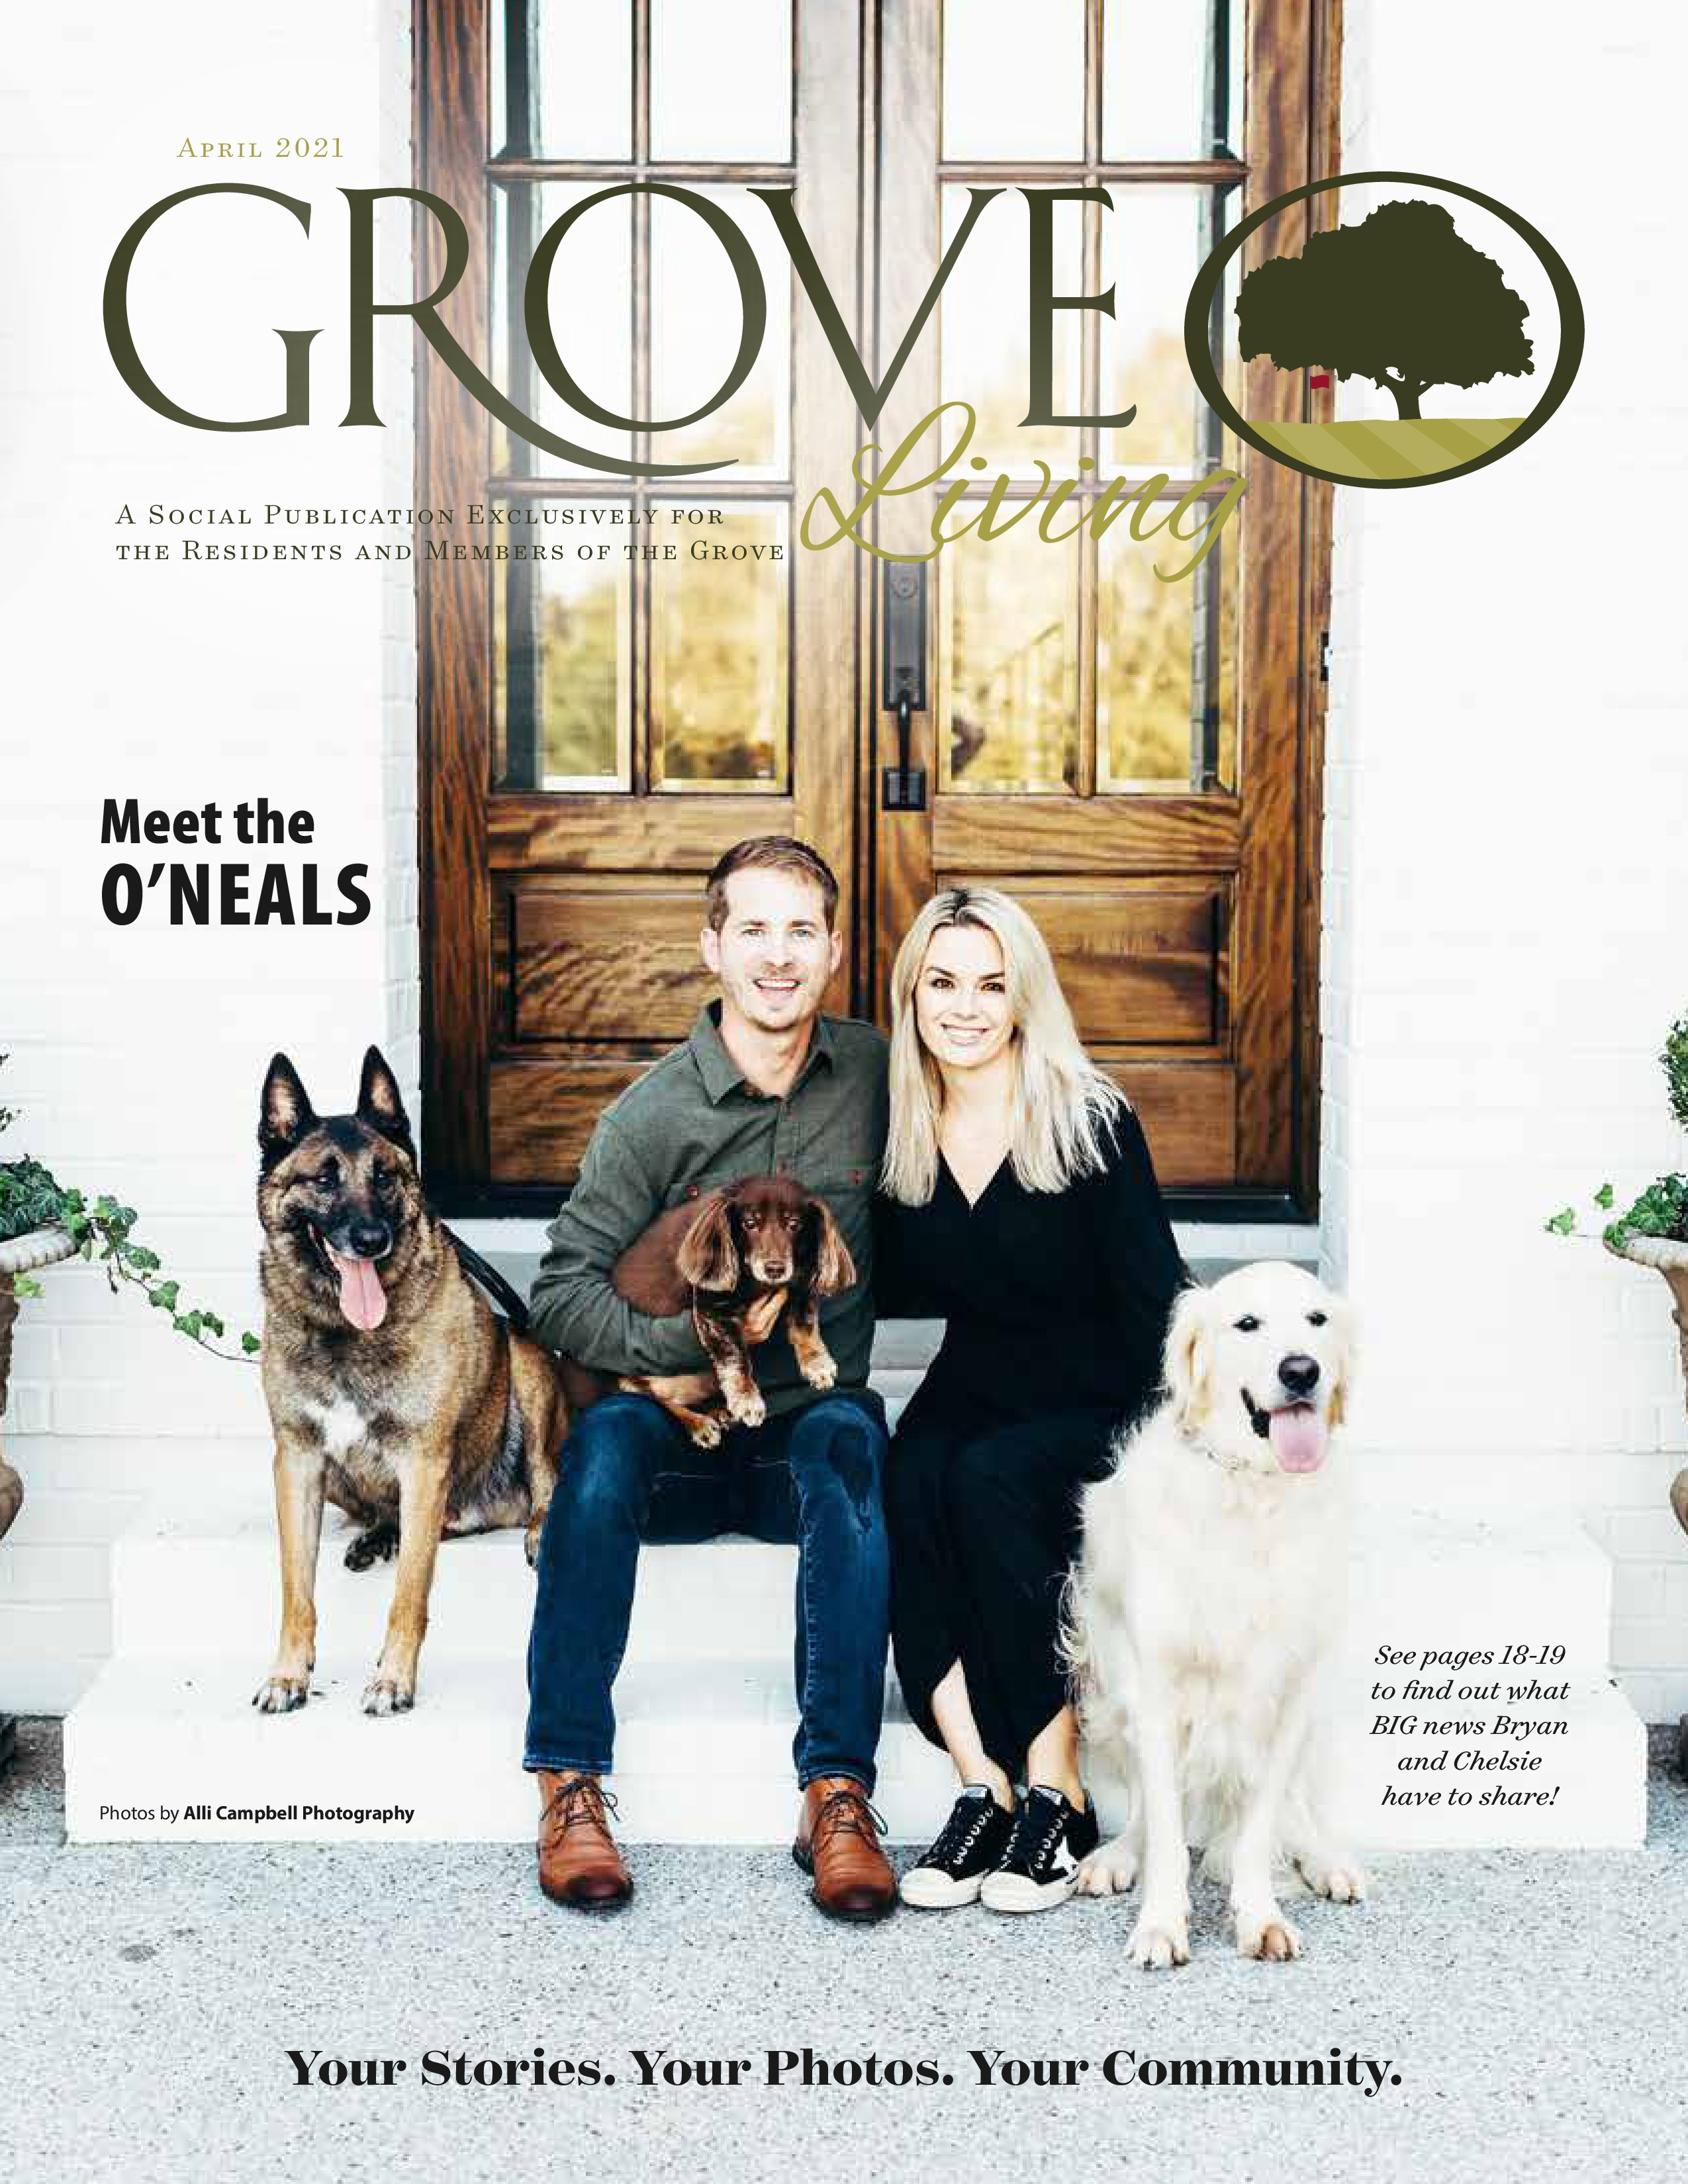 Life at the Grove 2021-04-01